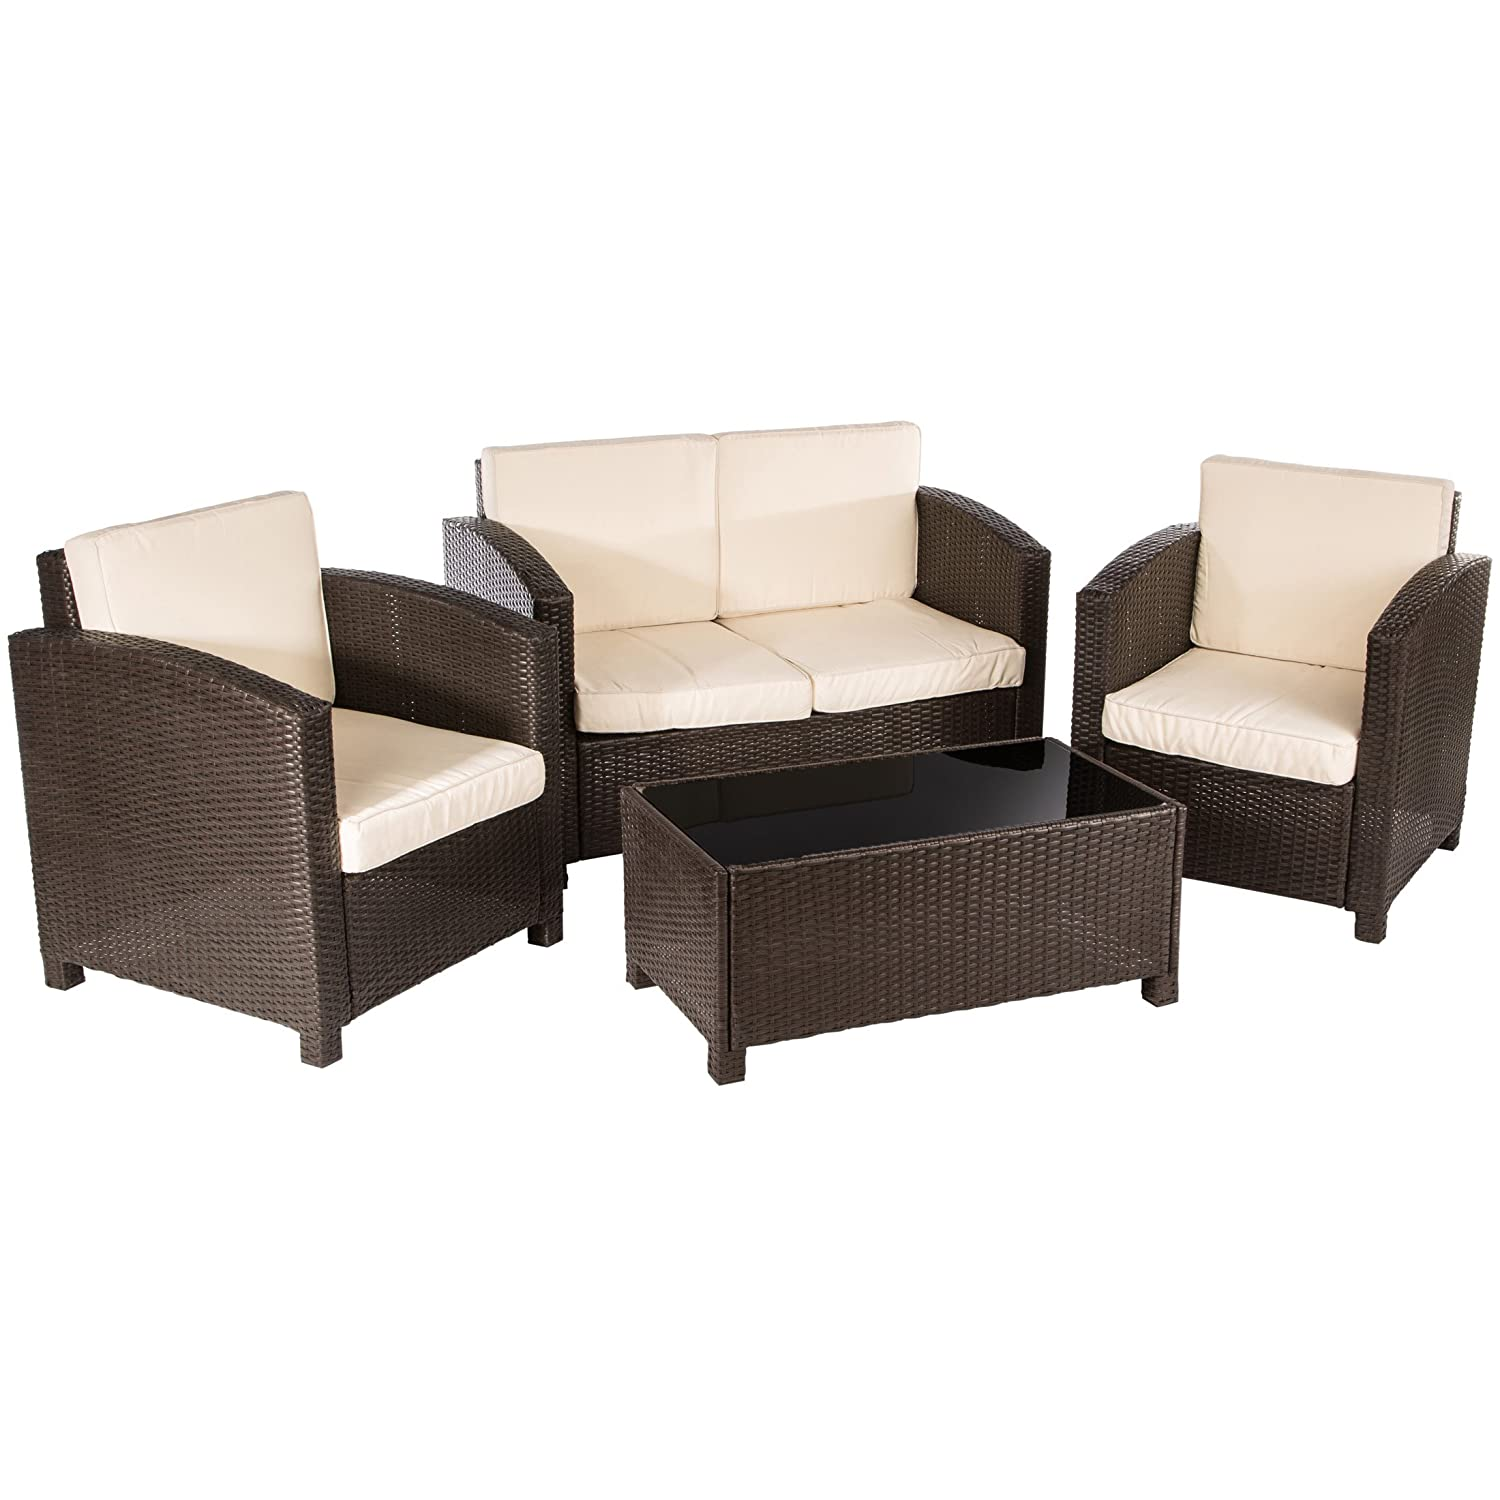 Ultranatura poly rattan lounge sitzgruppe palma serie 4 for Tisch couch